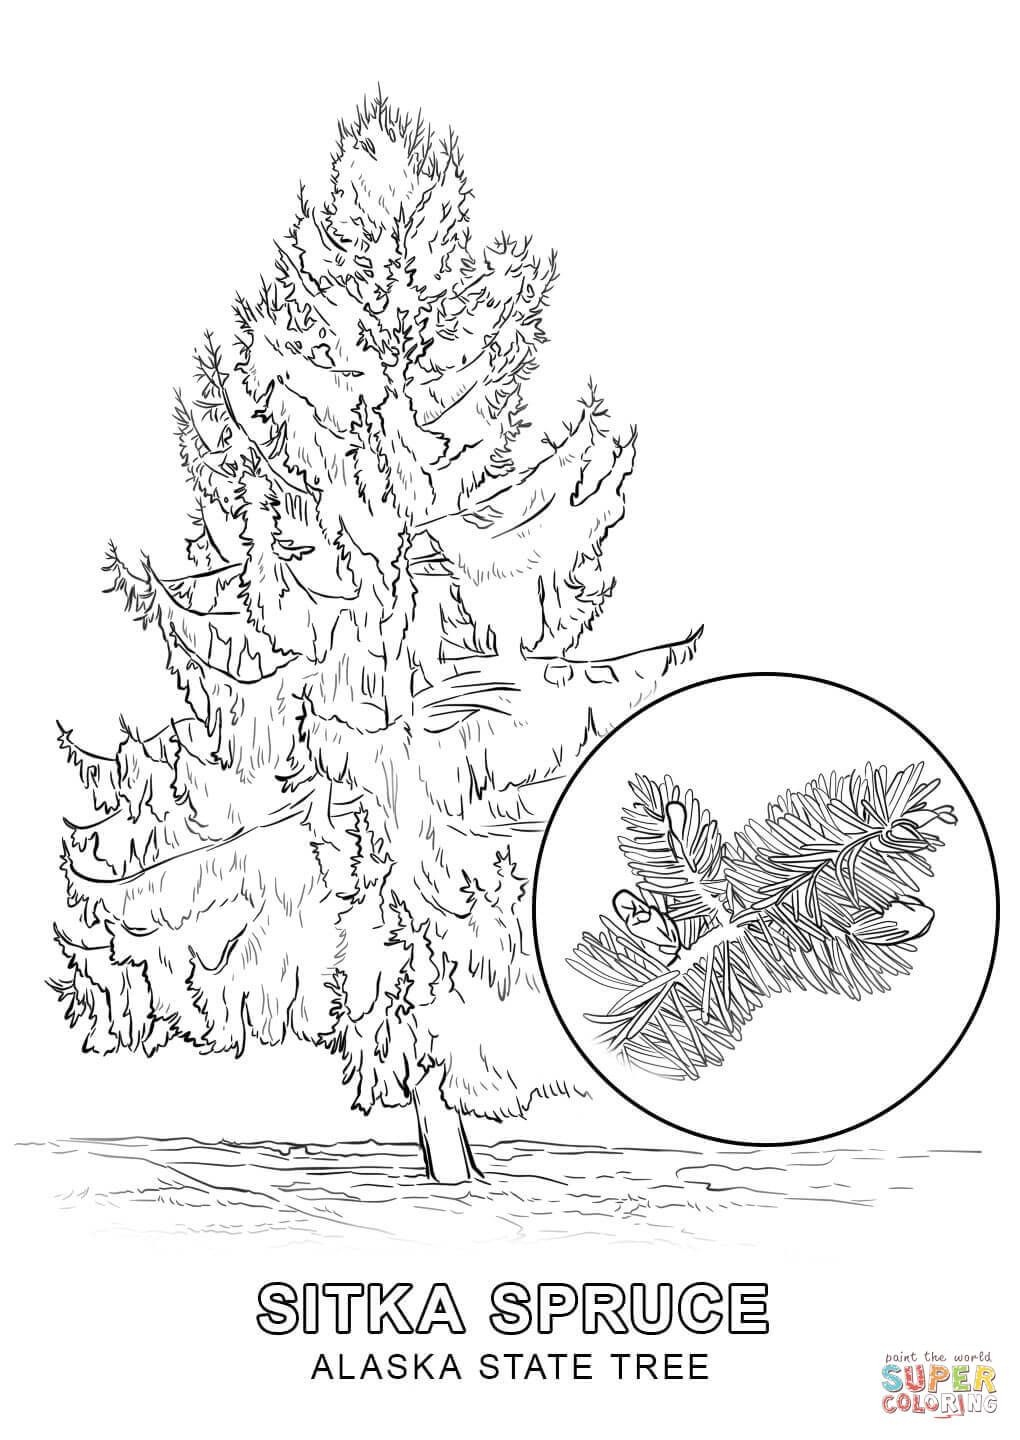 Alaska State Tree Coloring Page | Free Printable Coloring Pages - Free Printable Pictures Of Alaska